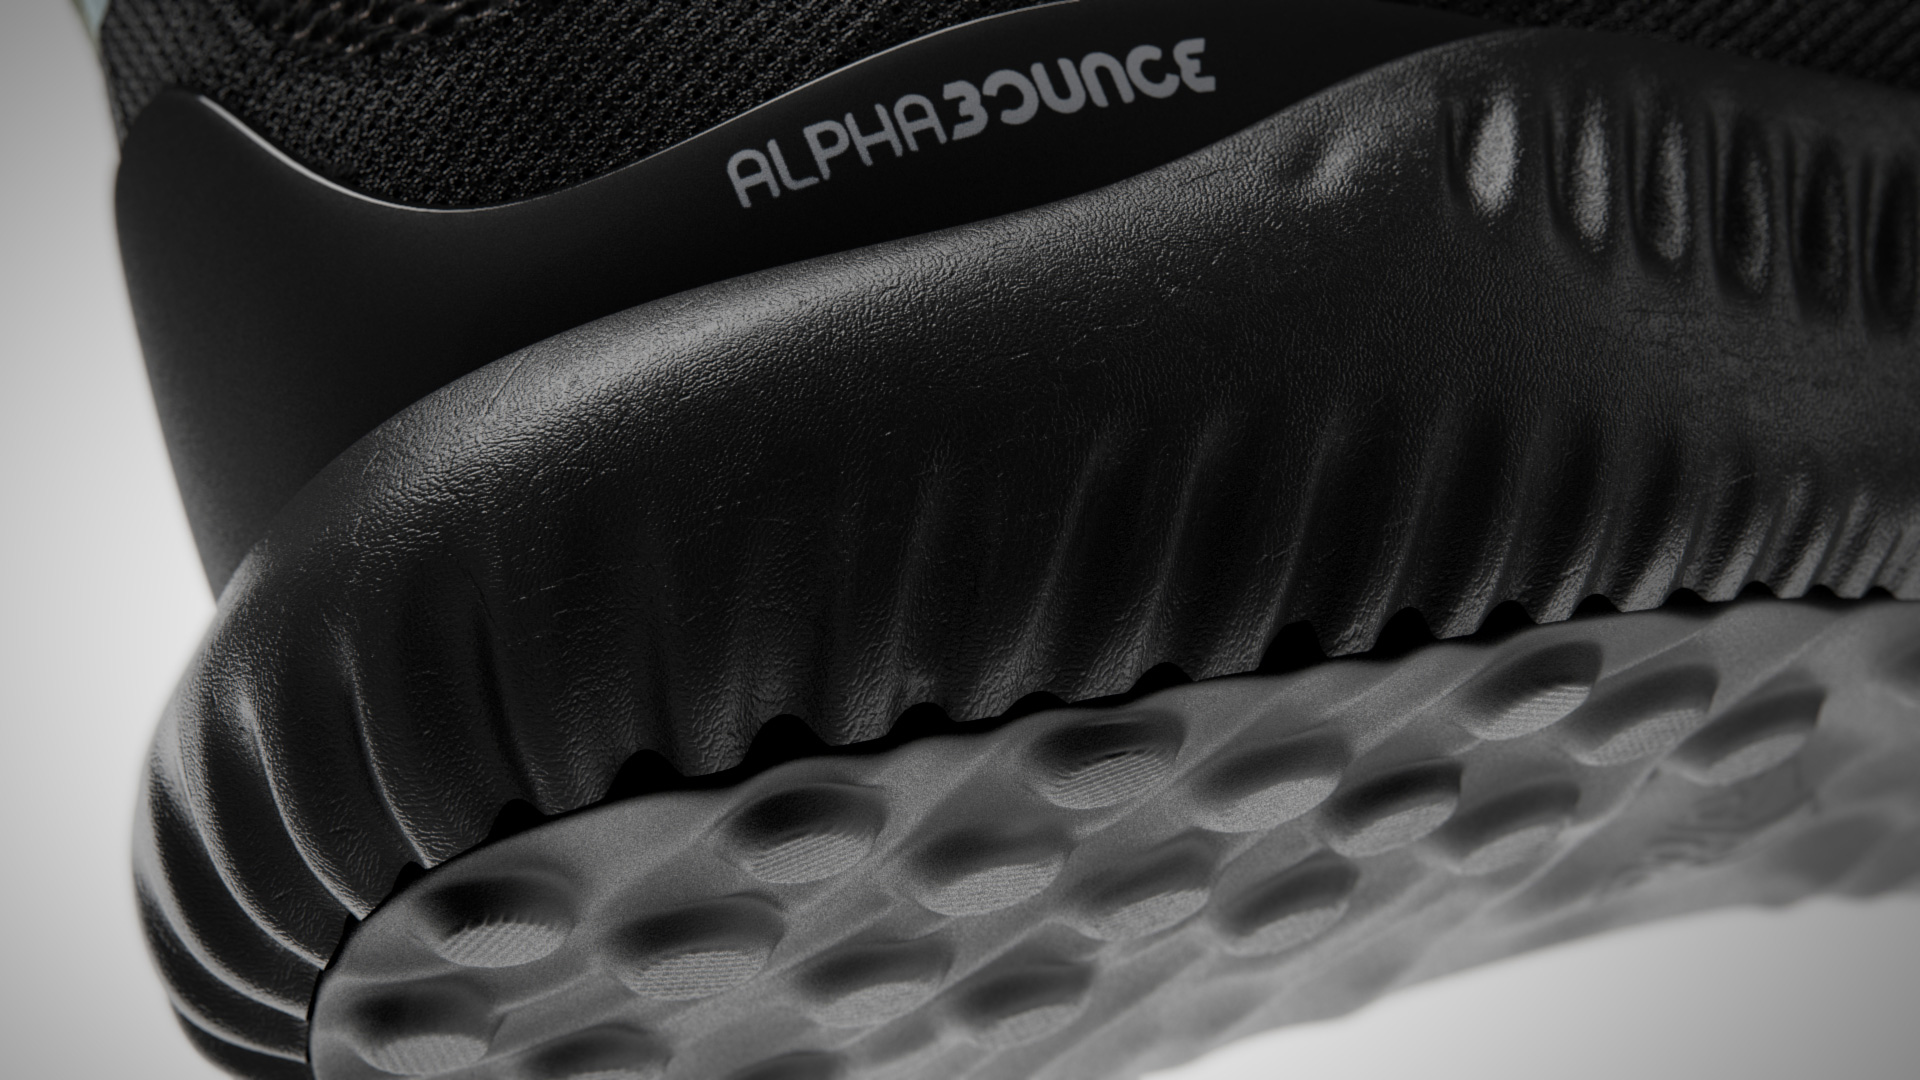 detail image of black adidas alphabounce shoe